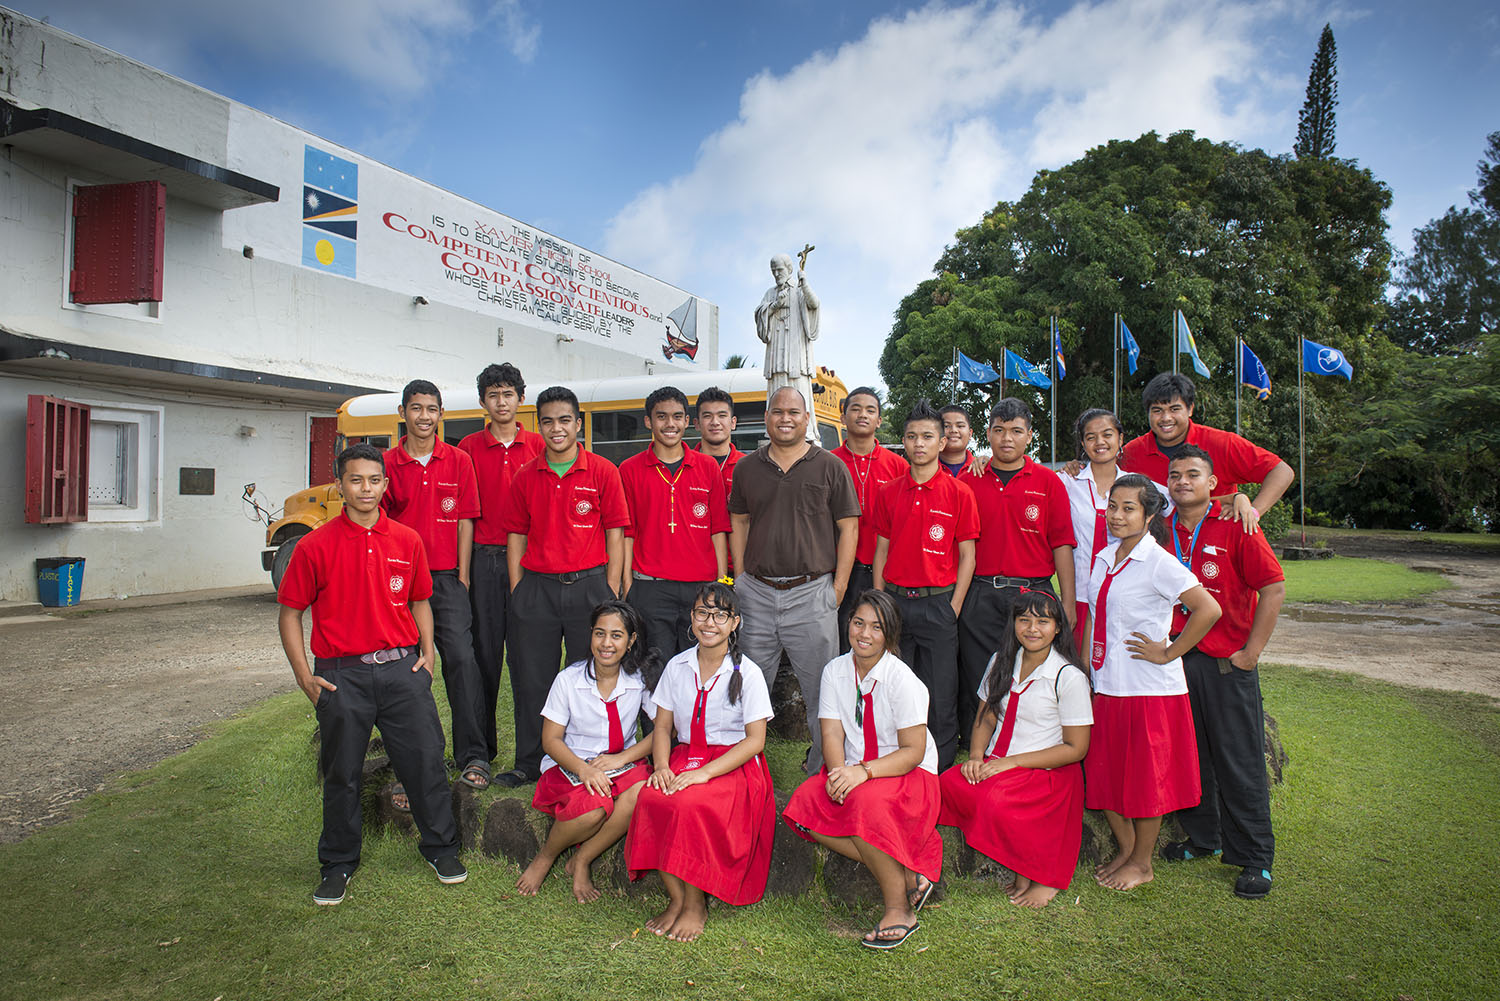 <p>Vice Principal Martin Carl with students at Xavier High School, a Jesuit institution that produces many leaders.</p>